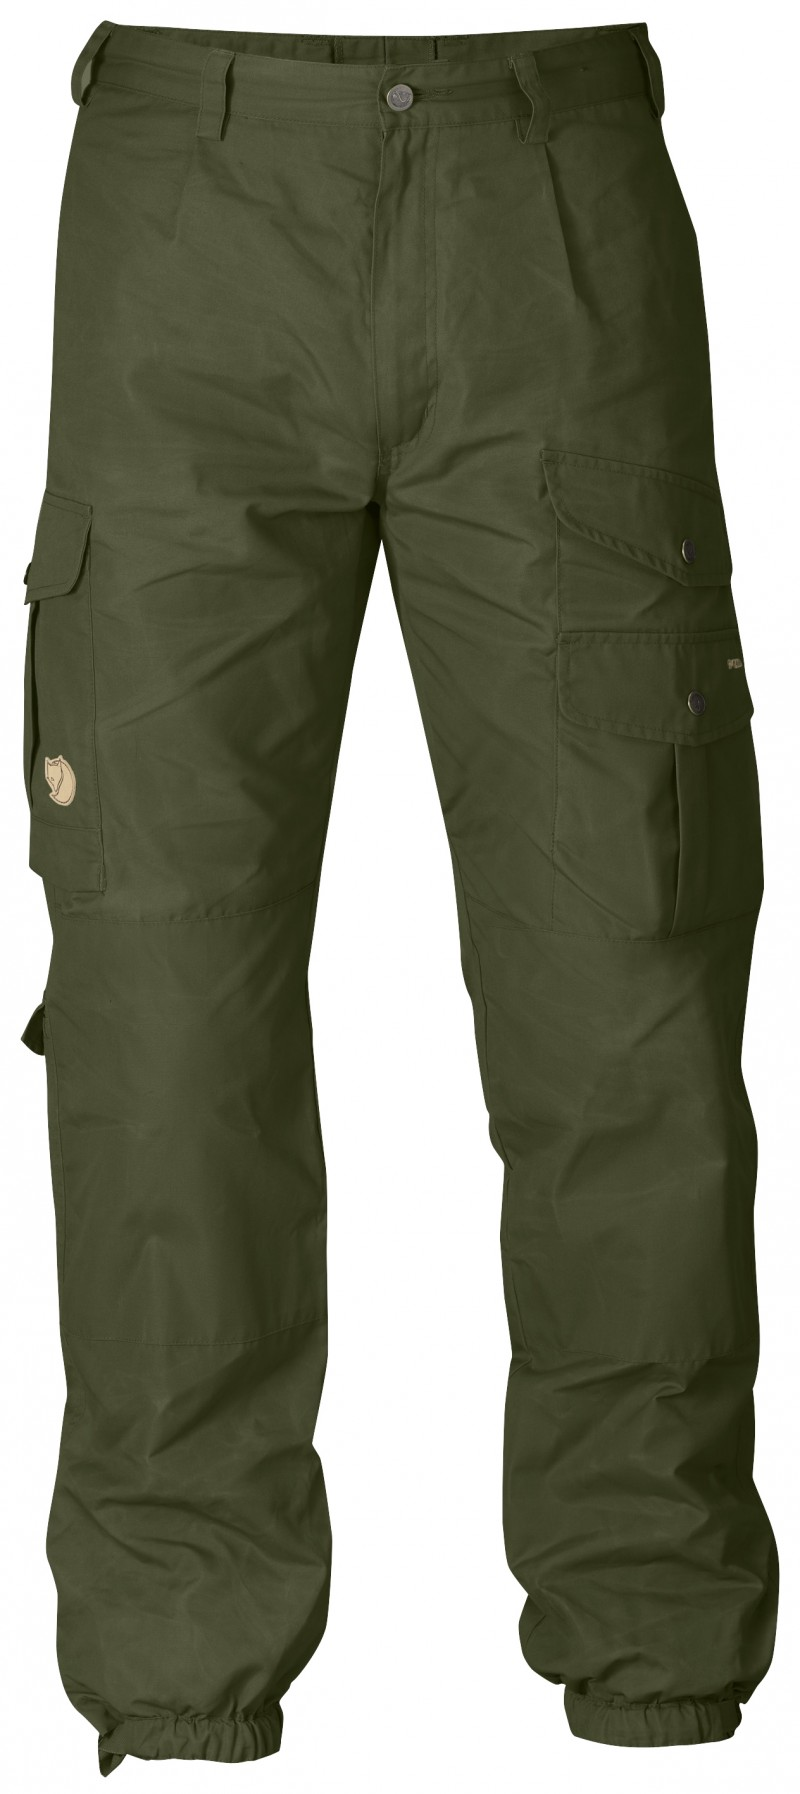 FjallRaven Iceland Winter Trousers Olive-30